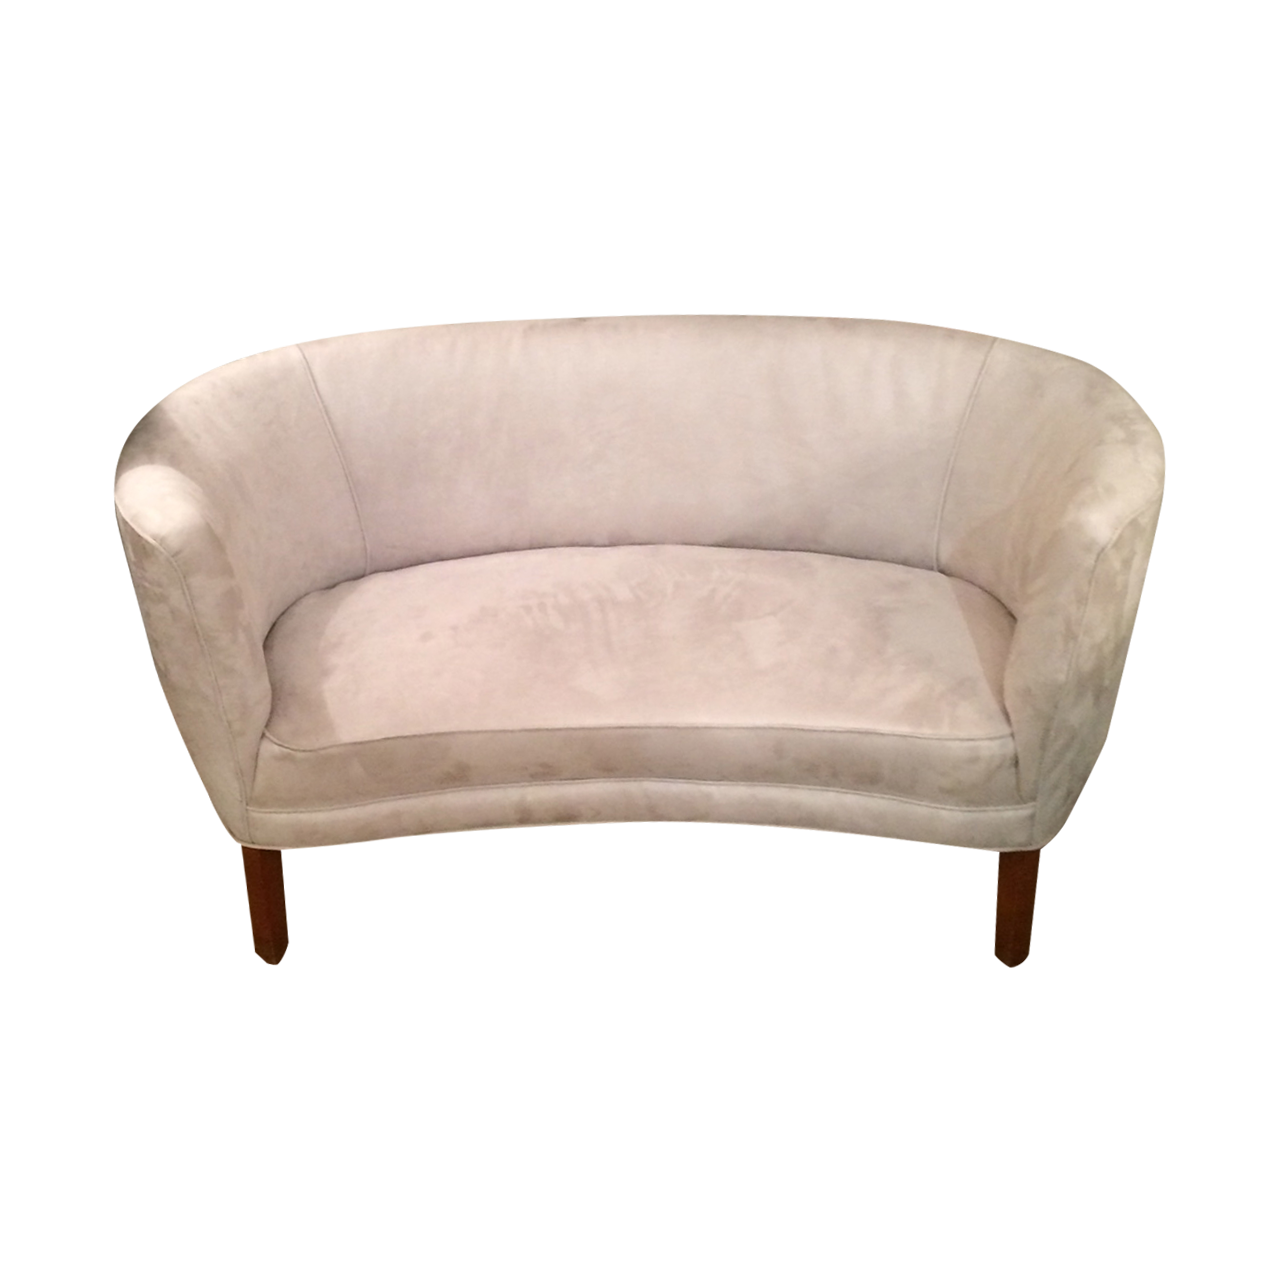 Settee Loveseat A Stylish Low Slung Curved Settee From The 1940s The Settee